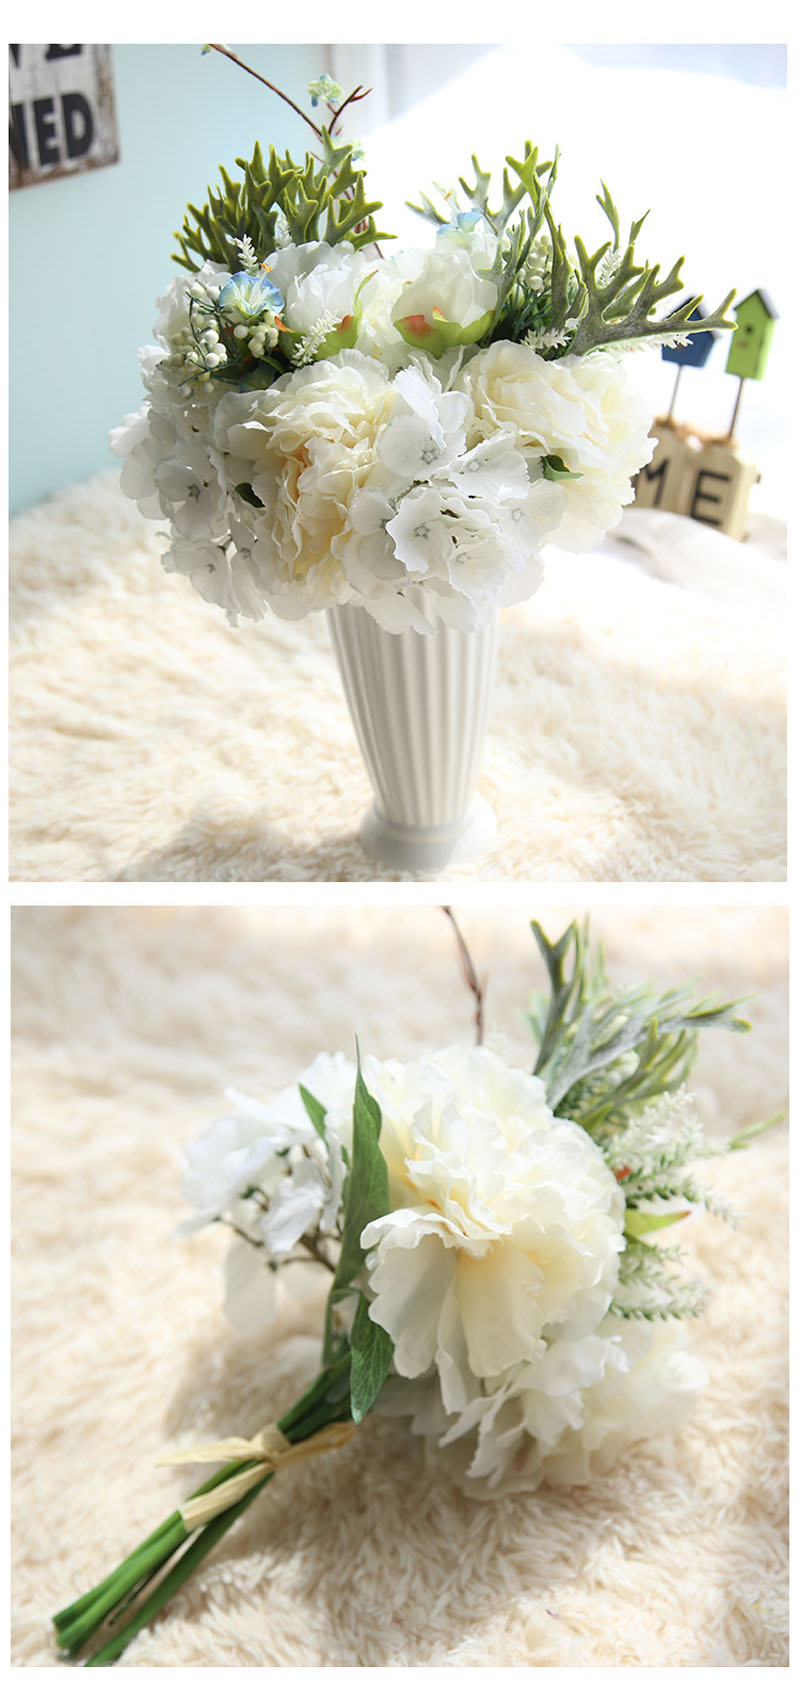 ▻Beautiful Artificial Hydrangea 6 Heads Silk Flowers With ...